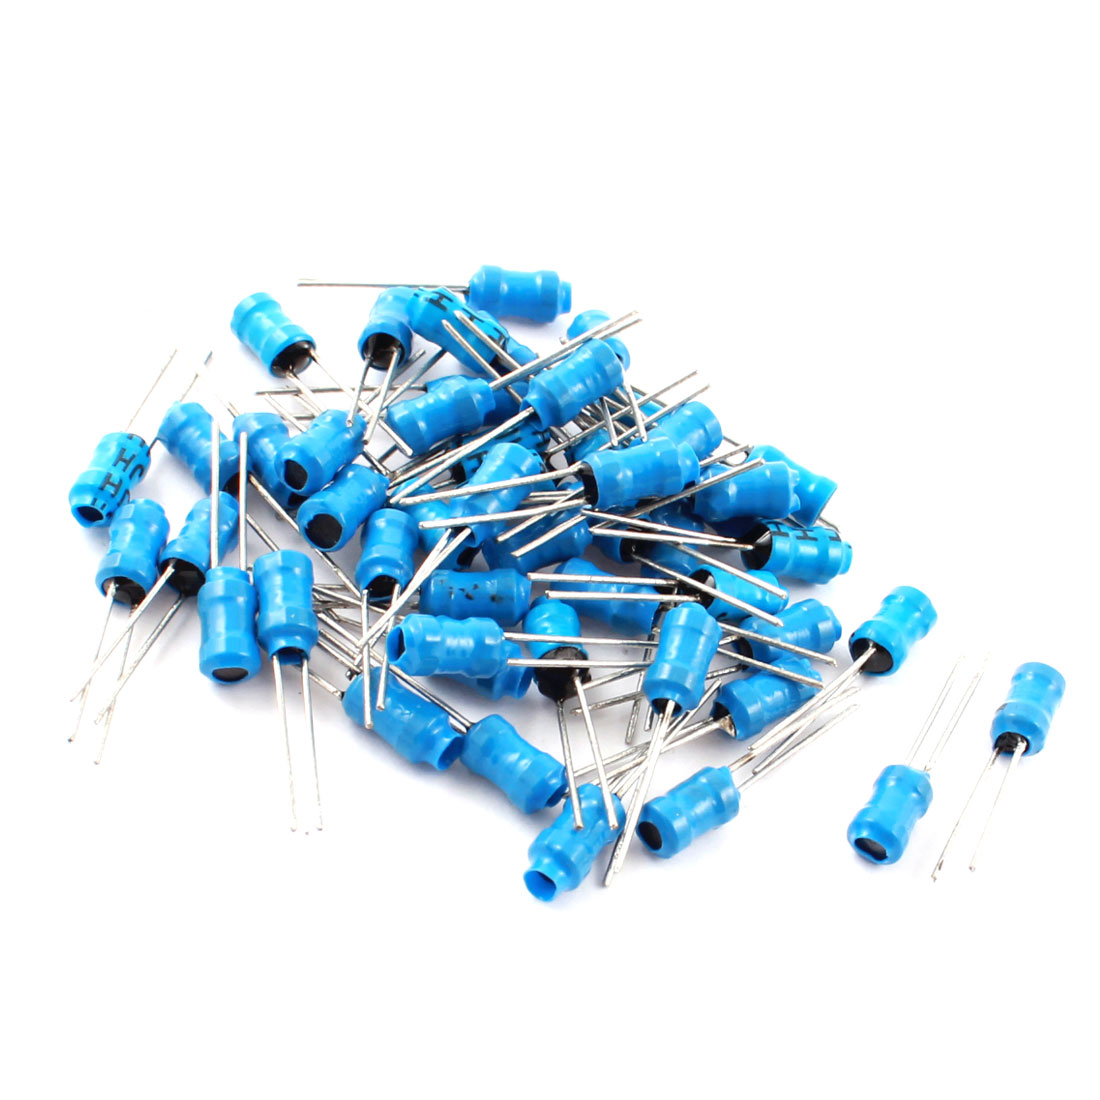 50Pcs 20MH 100mA 10% 4x6mm UL-polyolefin Metal Radial Leads Power Inducers Magnetic Core Inductors Blue